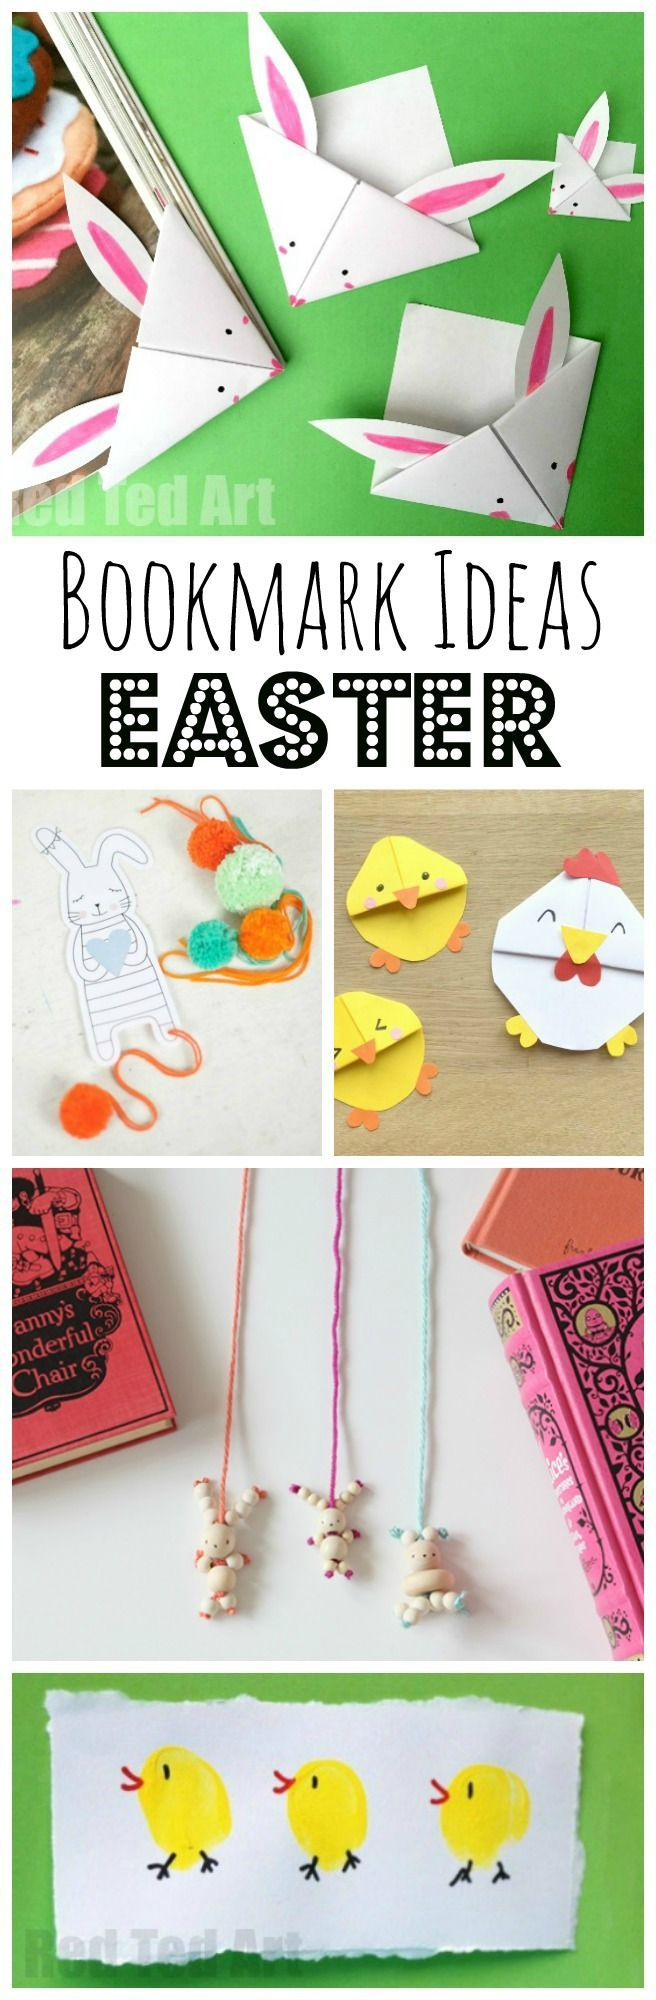 Easter Bookmark Crafts - if you love making your own DIY Bookmarks - whether it is Easter Corner Bookmarks or Fingerprint Bookmarks or getting a little help from Printables, you simply HAVE TO SEE these super duper cute Easter Bookmark Designs. They are s